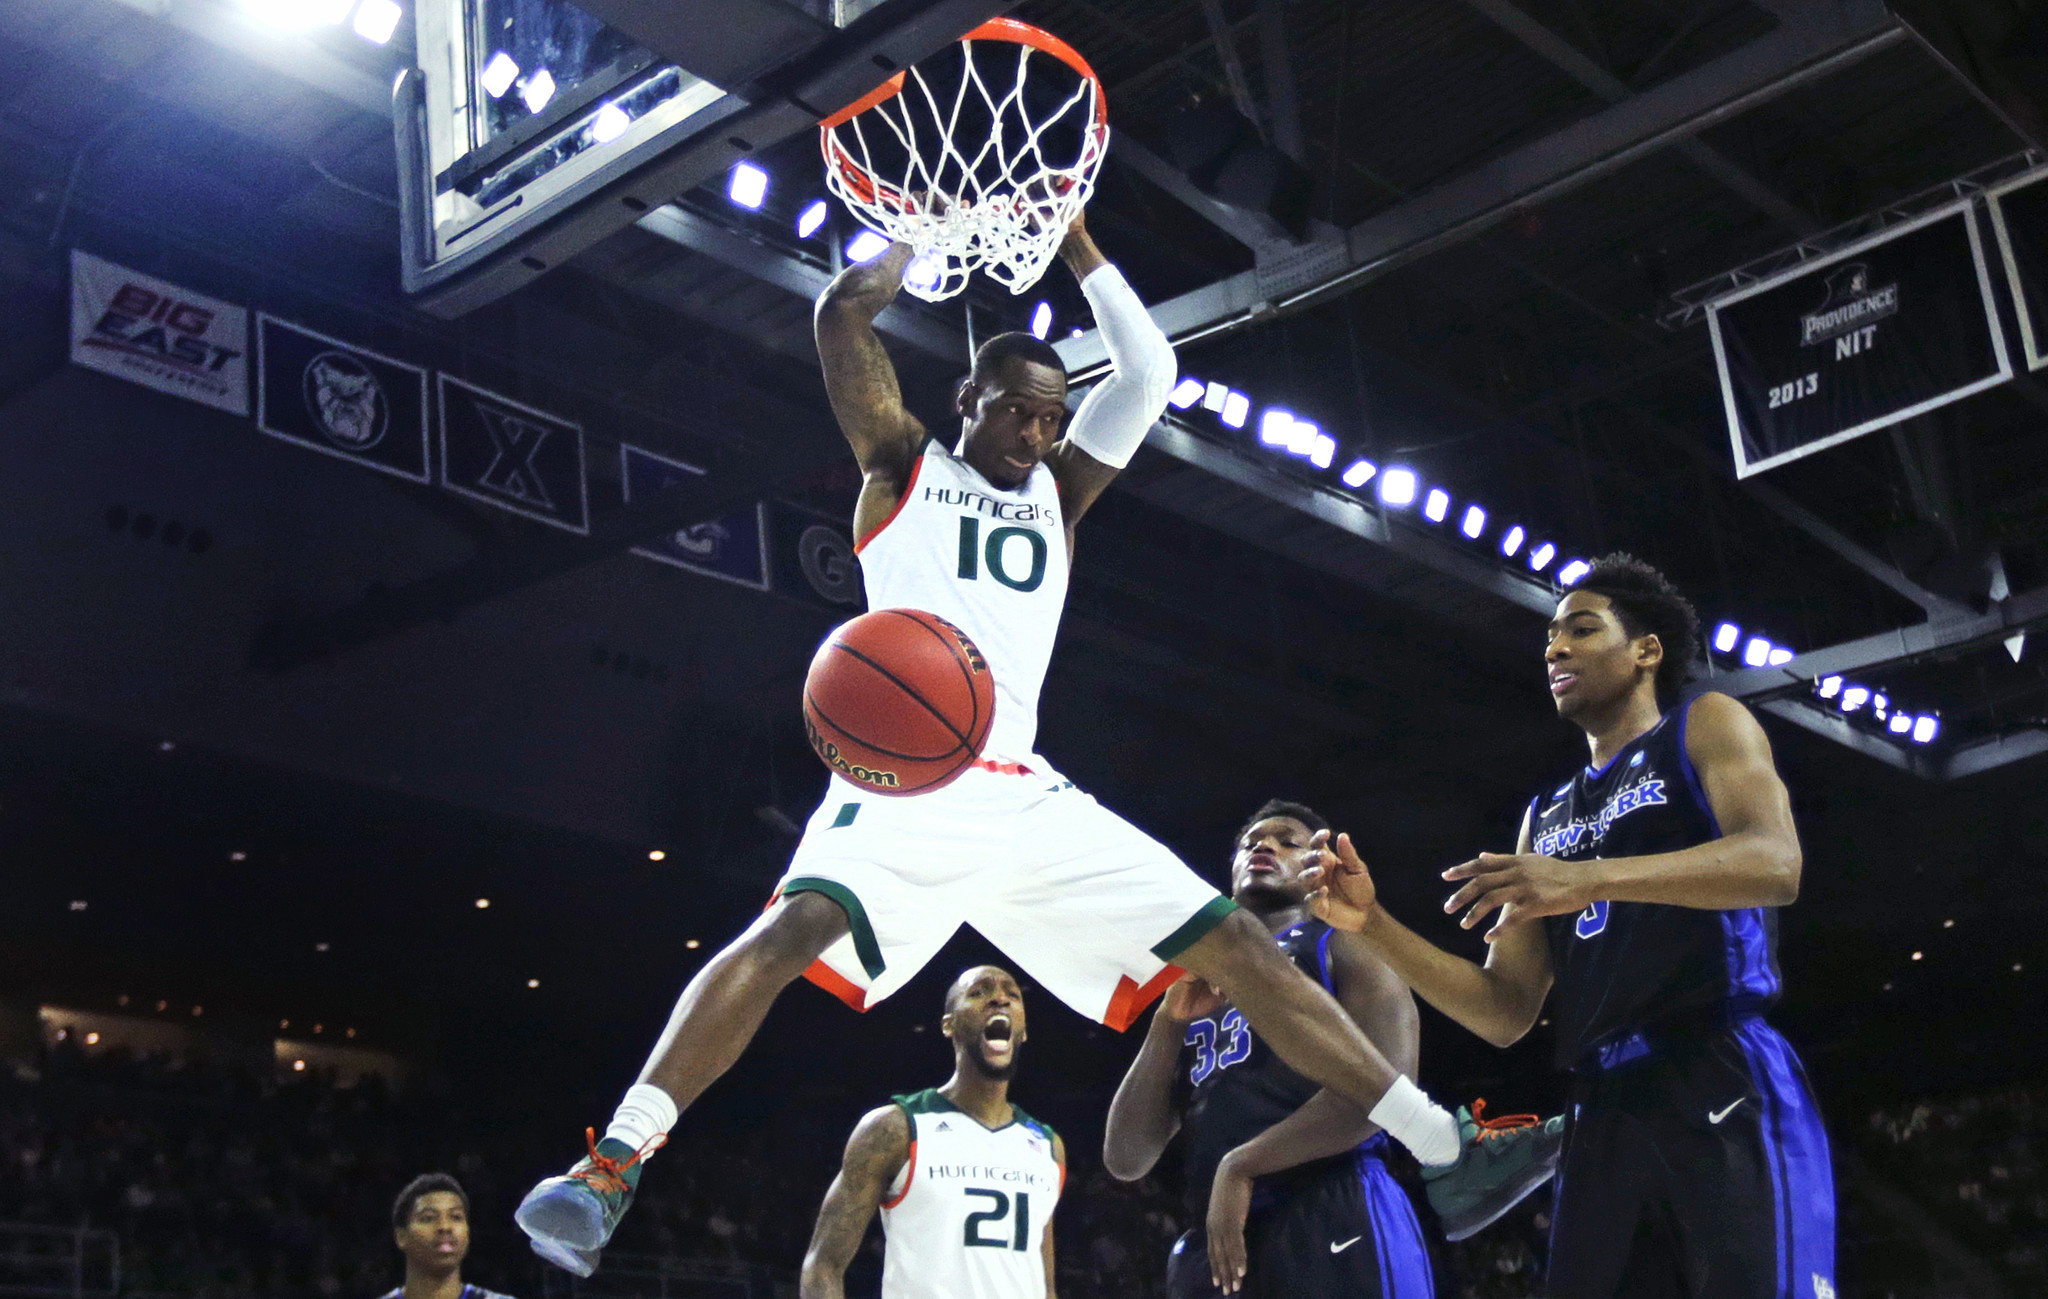 Sfl-um-s-mcclellan-to-reportedly-sign-with-washington-after-nba-draft-20160623